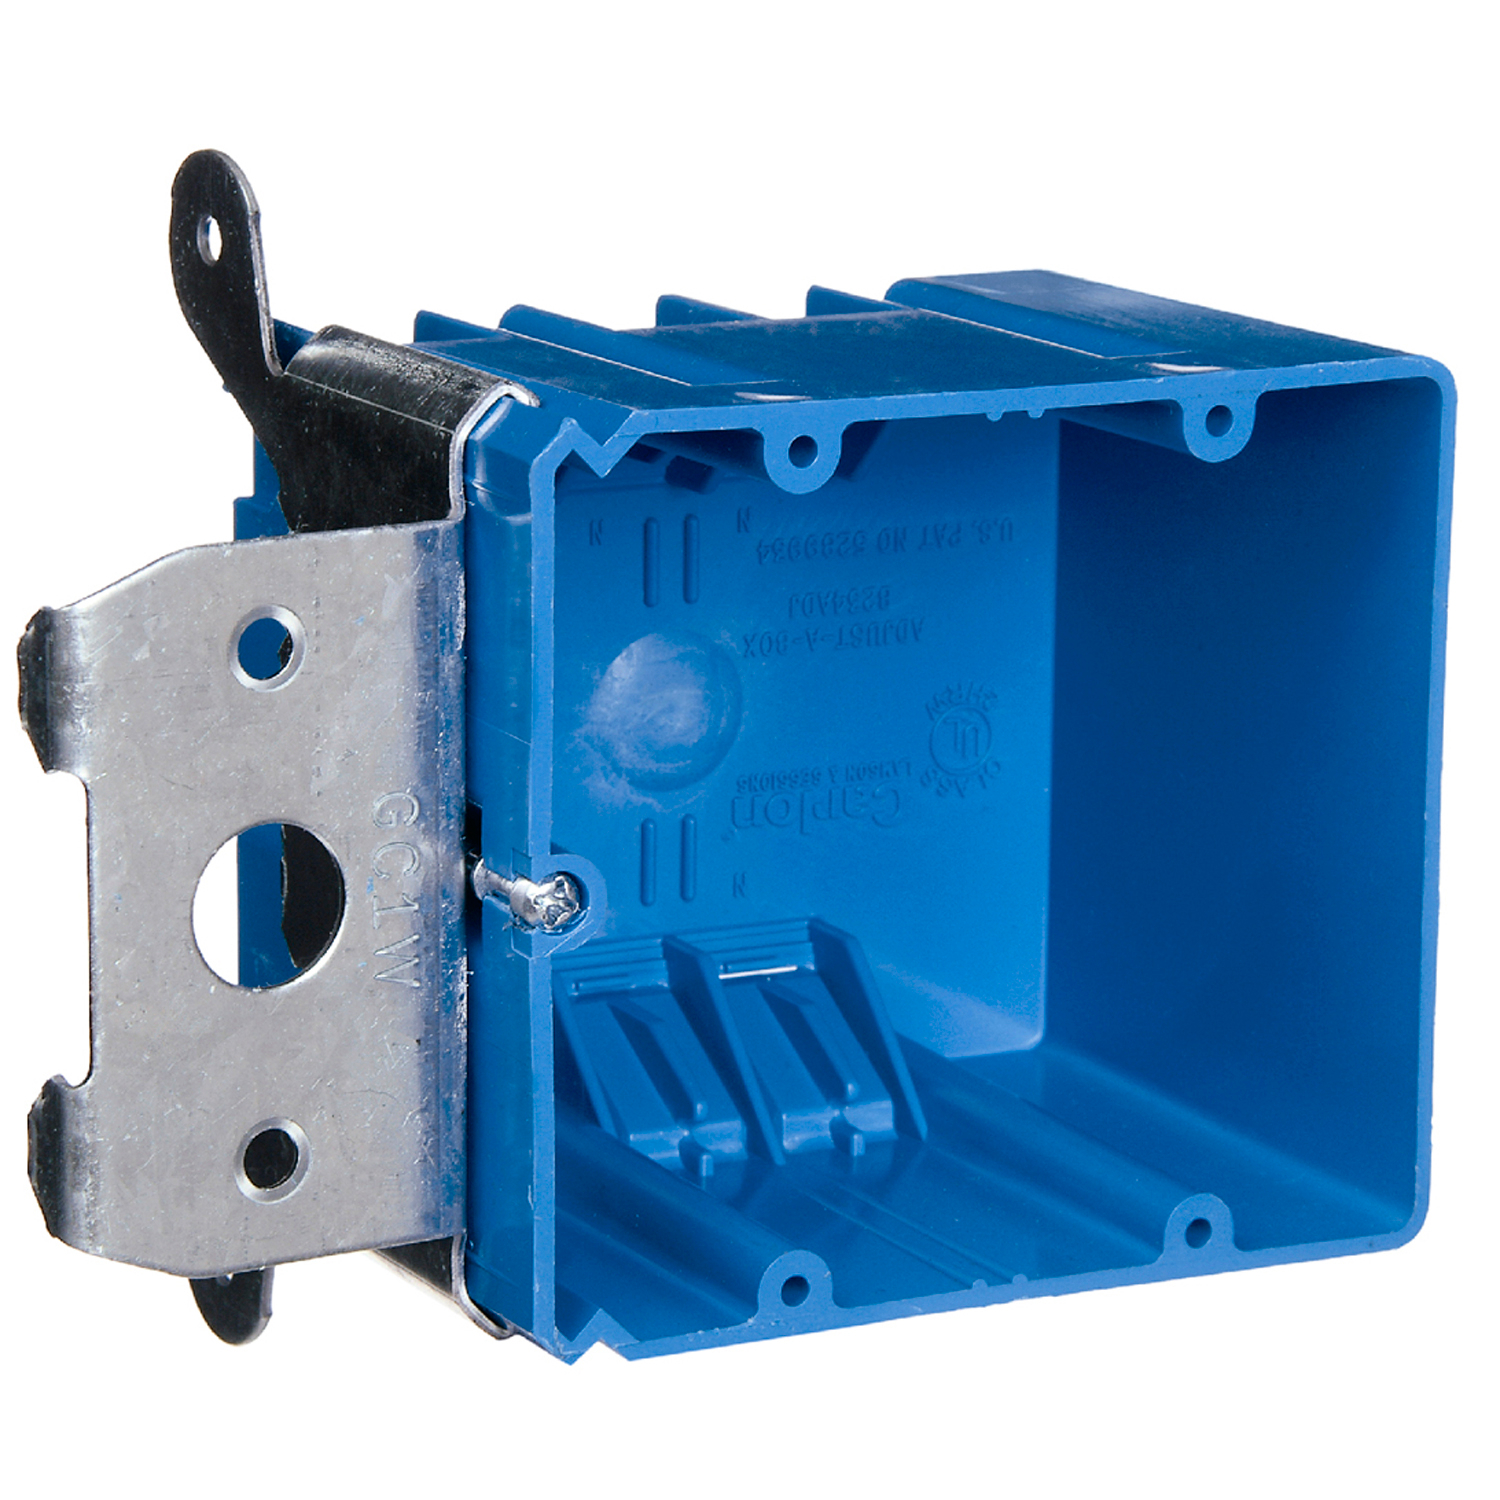 CAR B234ADJ TWO GANG ADJUSTABLE ELECTRICAL BOX